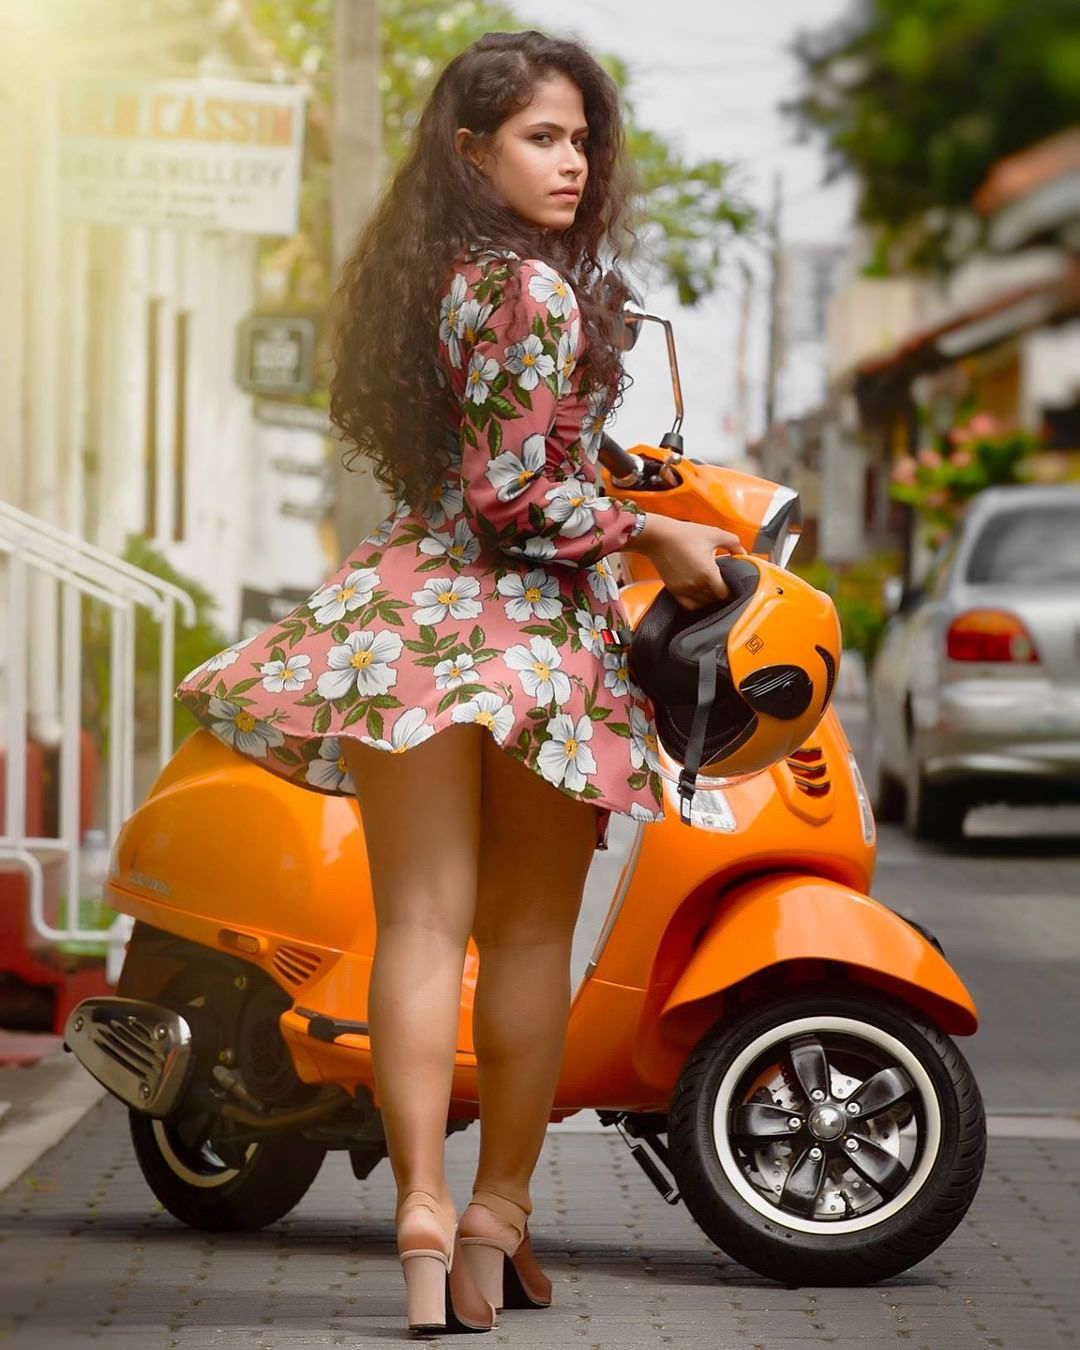 Booty girl on scooter